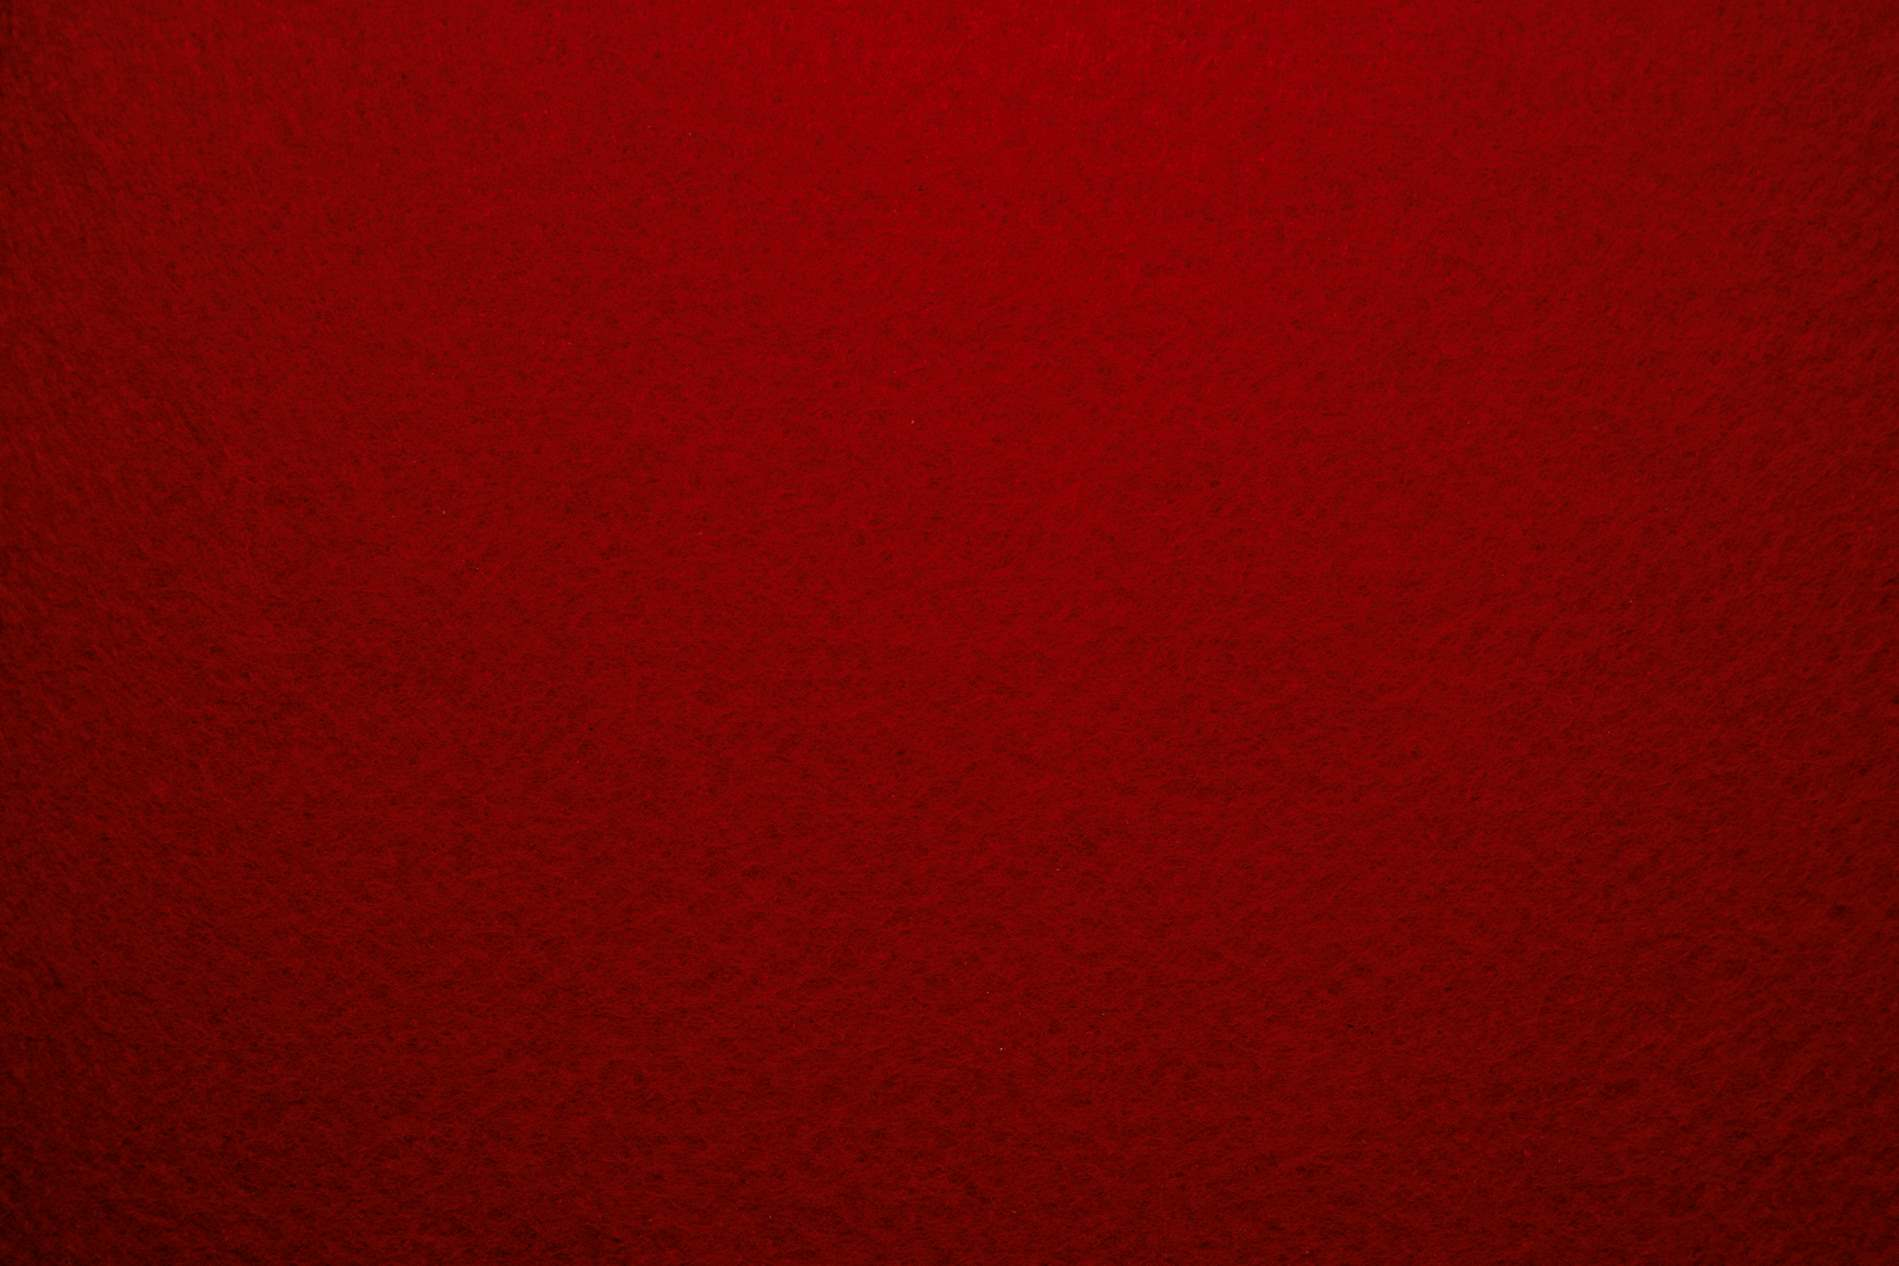 Red Fabric Background Texture - PhotoHDX